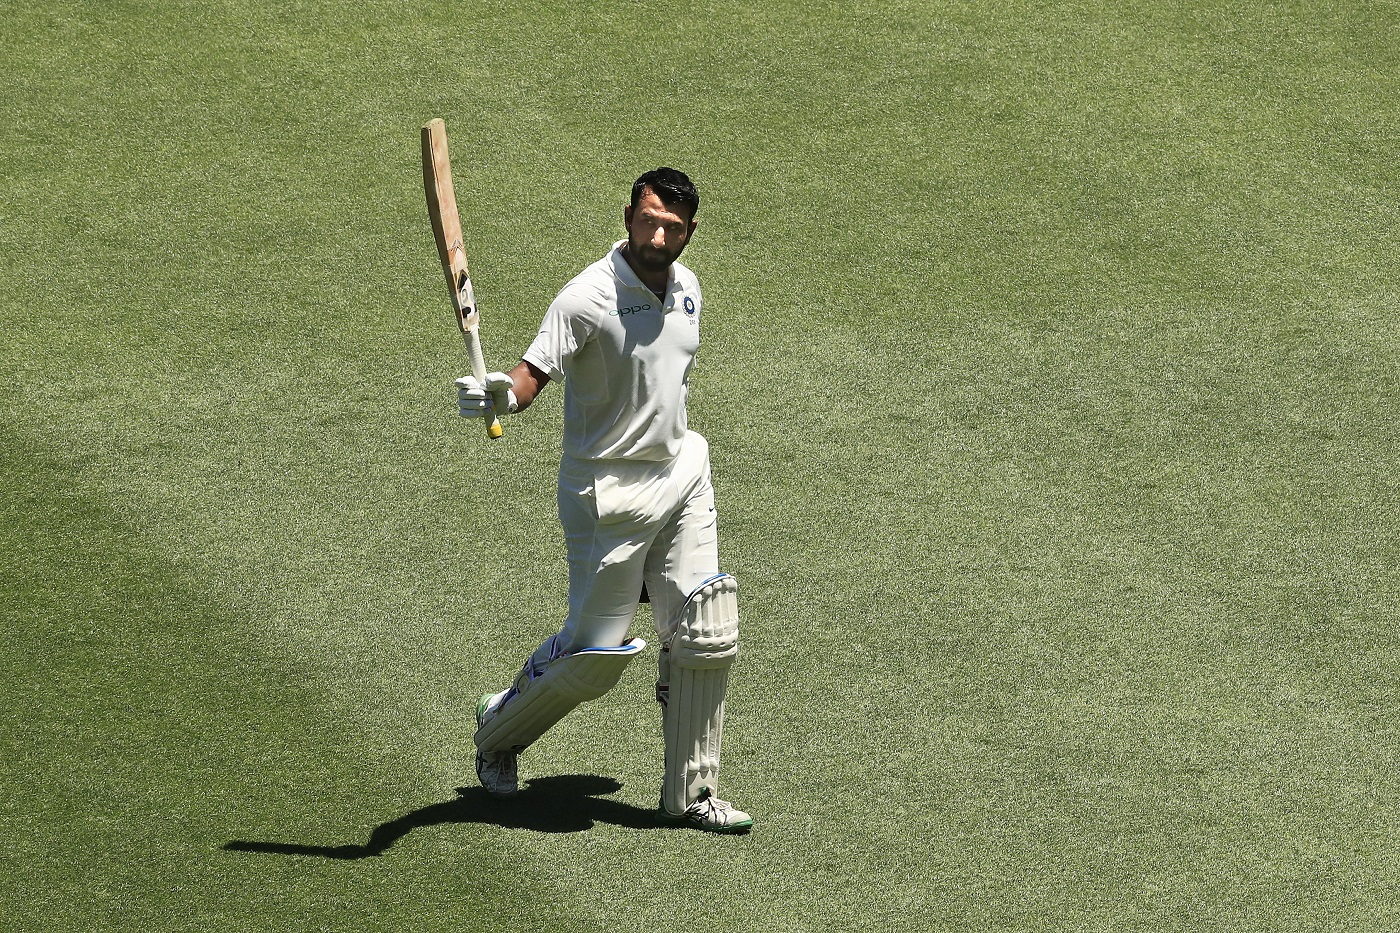 'We've got what we've got': India series underlines Australia's batting issues